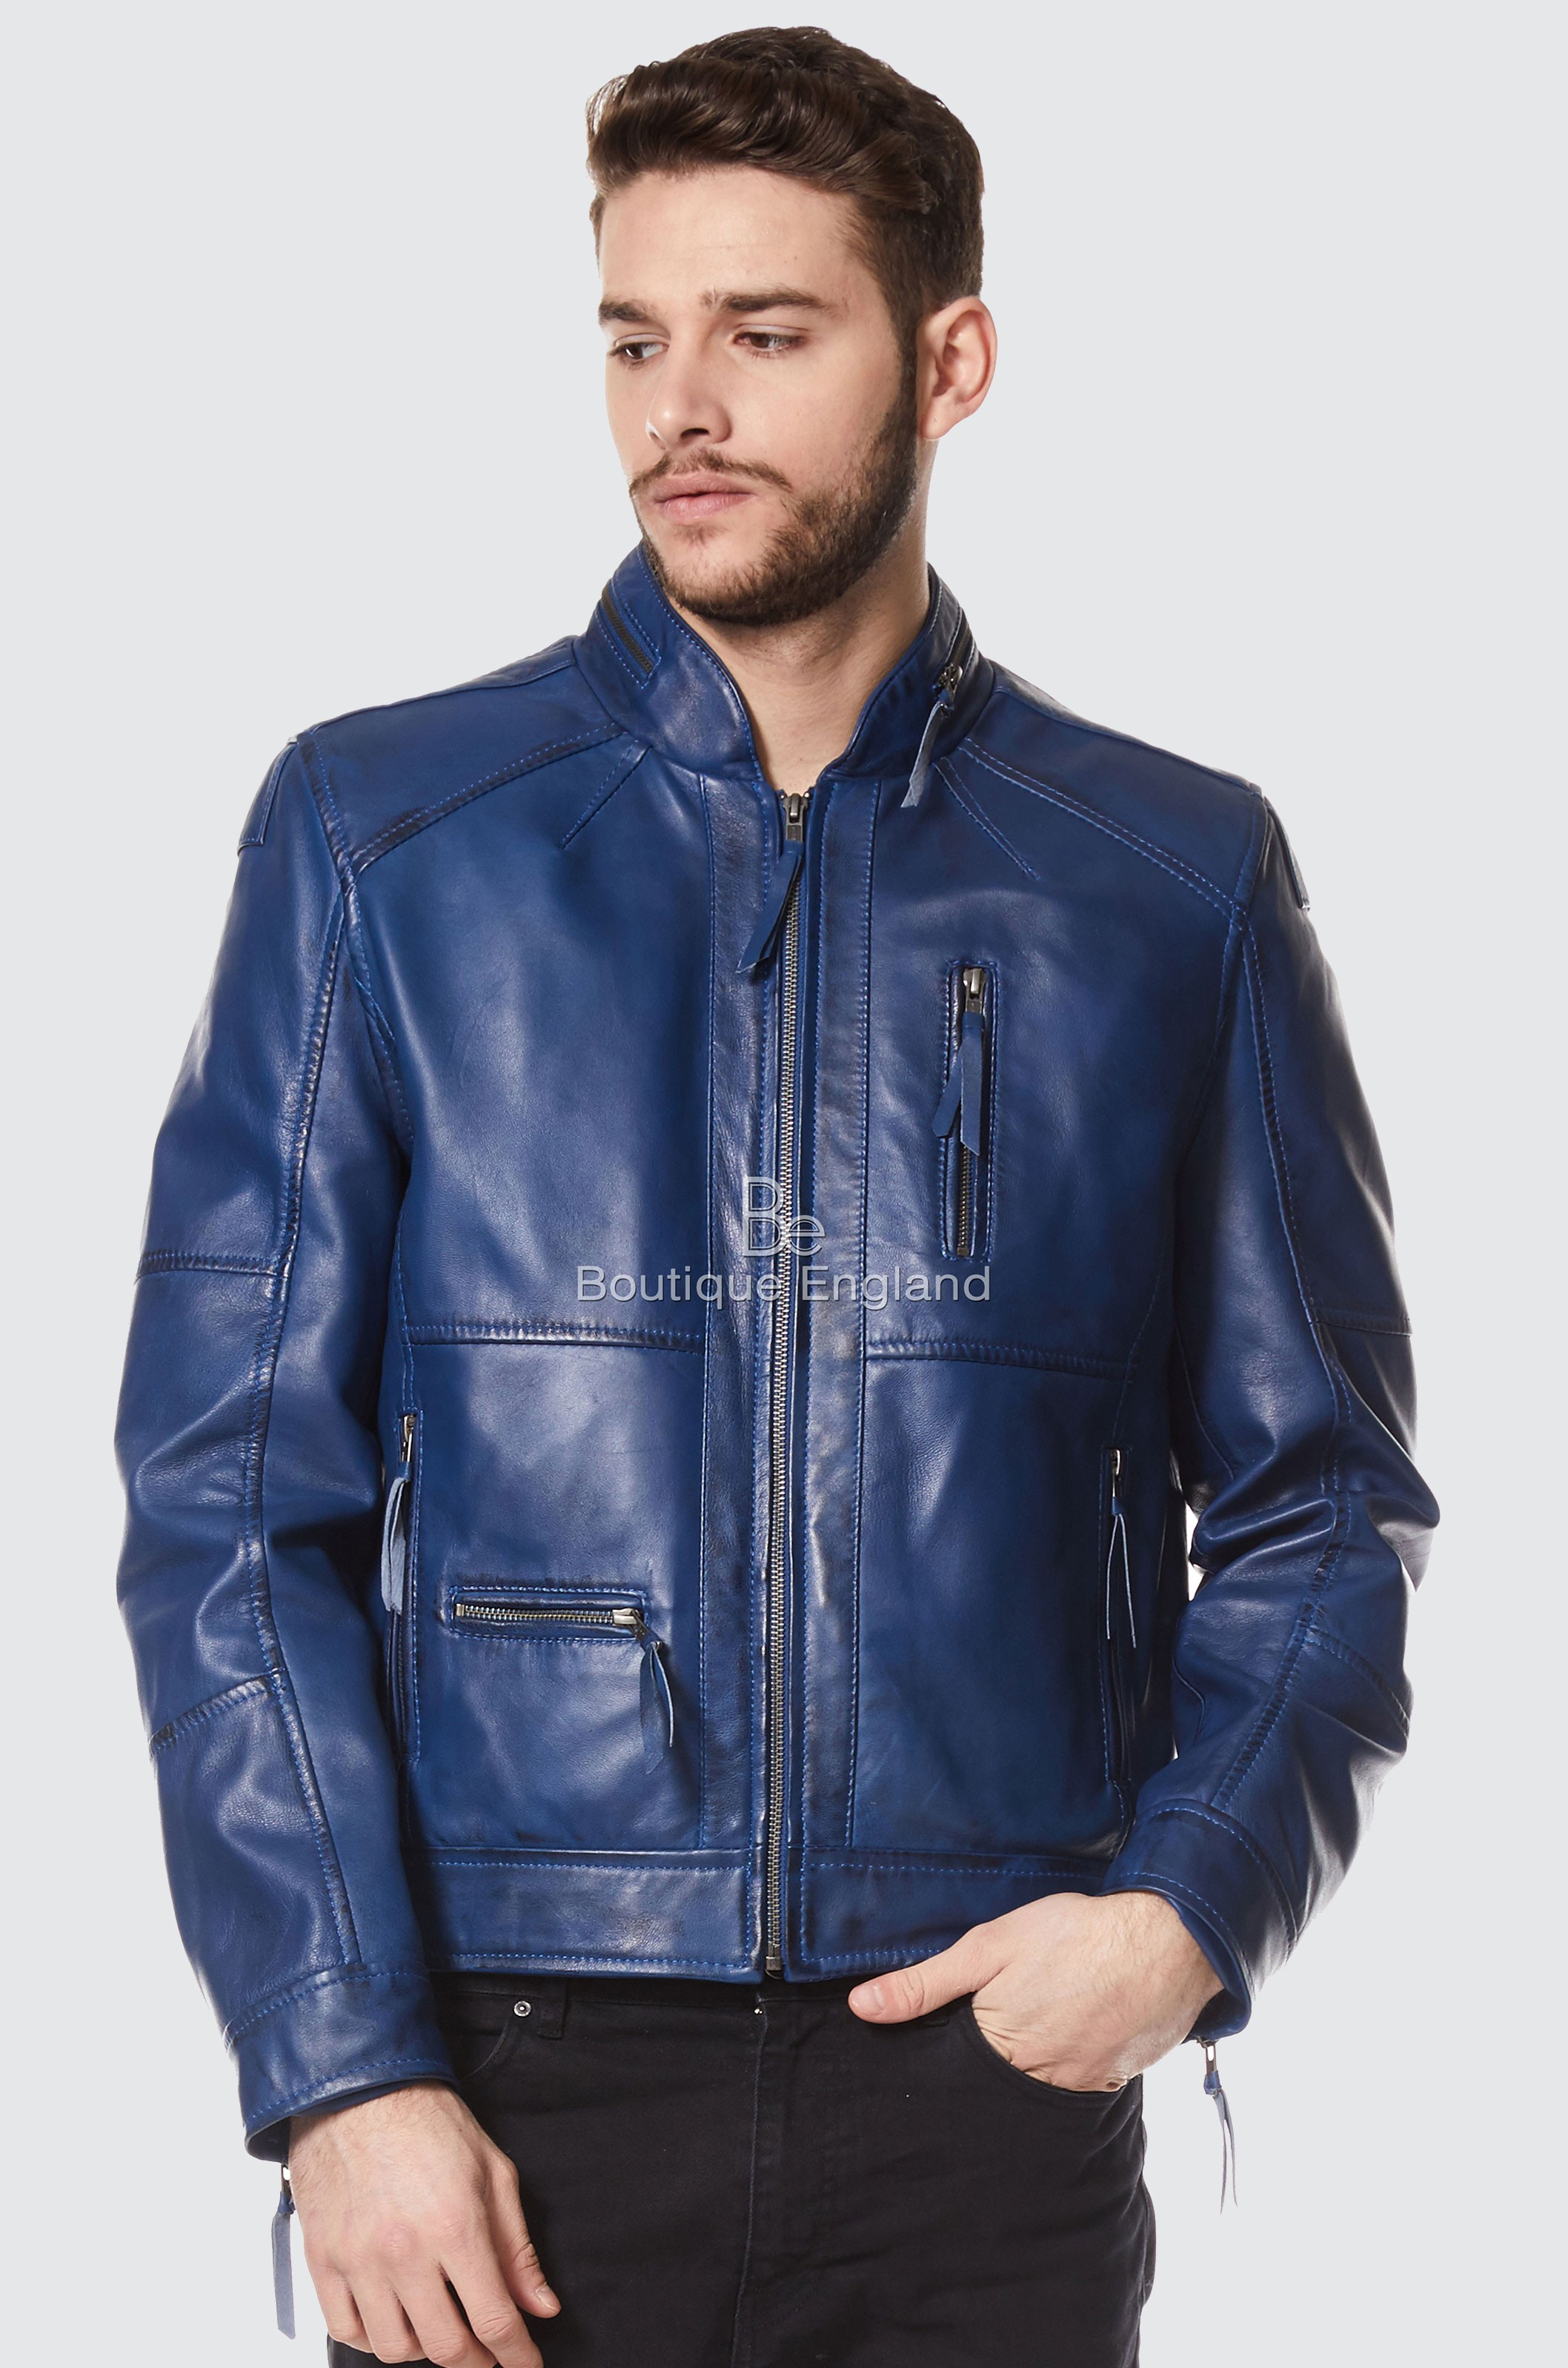 Men's Classic Style BLUE ZipCollar Designer Wax Casual Soft Leather Jacket 9056